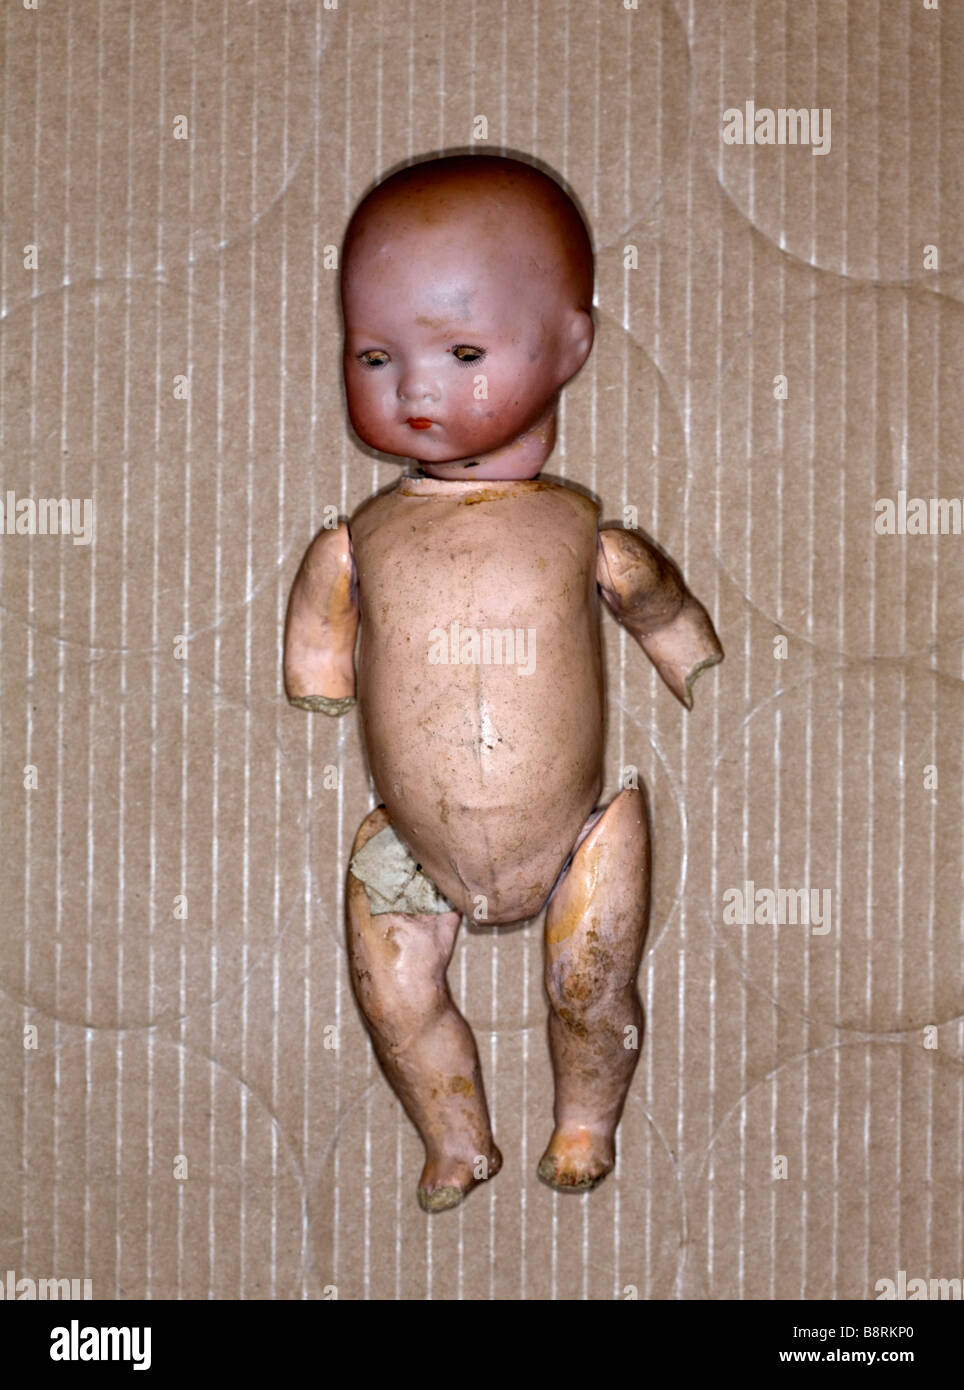 Studio shot of  damaged toy doll in a cardboard box. - Stock Image